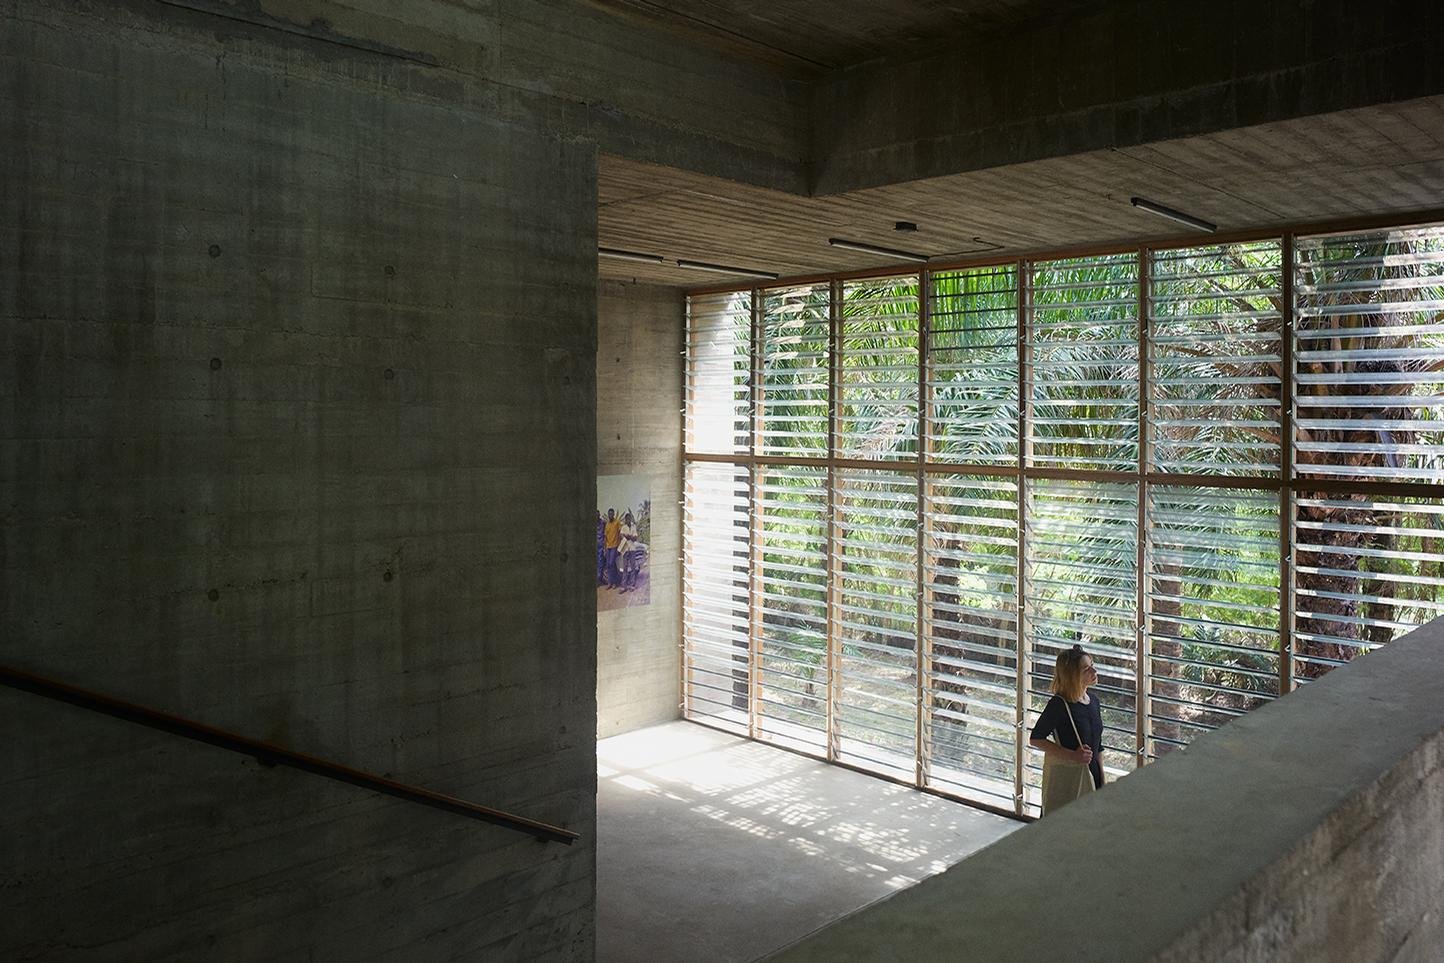 A large floor-to-ceiling window at one end allows natural light into the space / Julien Lanoo